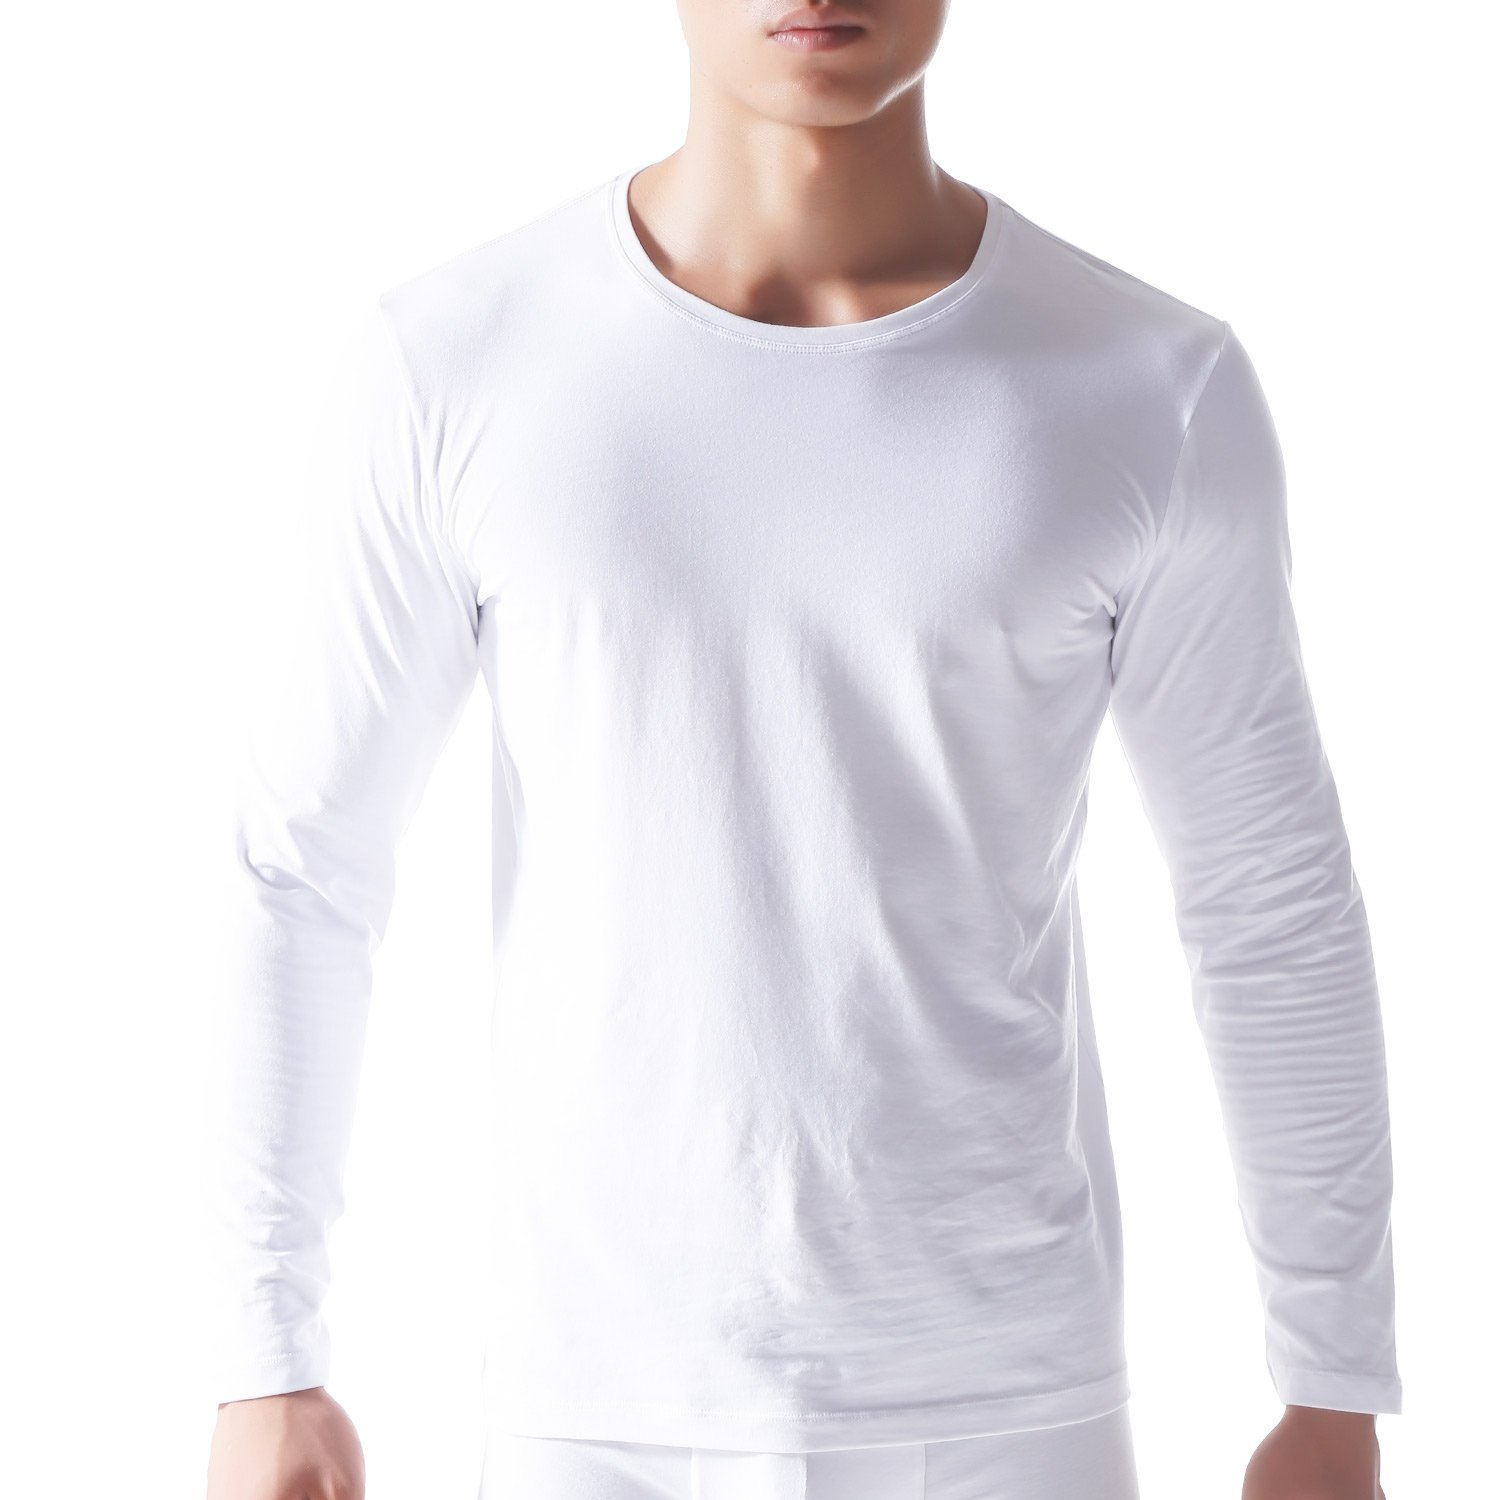 David Archy Men's 2 Pack Long Sleeve Crew Neck Soft Cotton Light Weight Undershirts T-Shirts